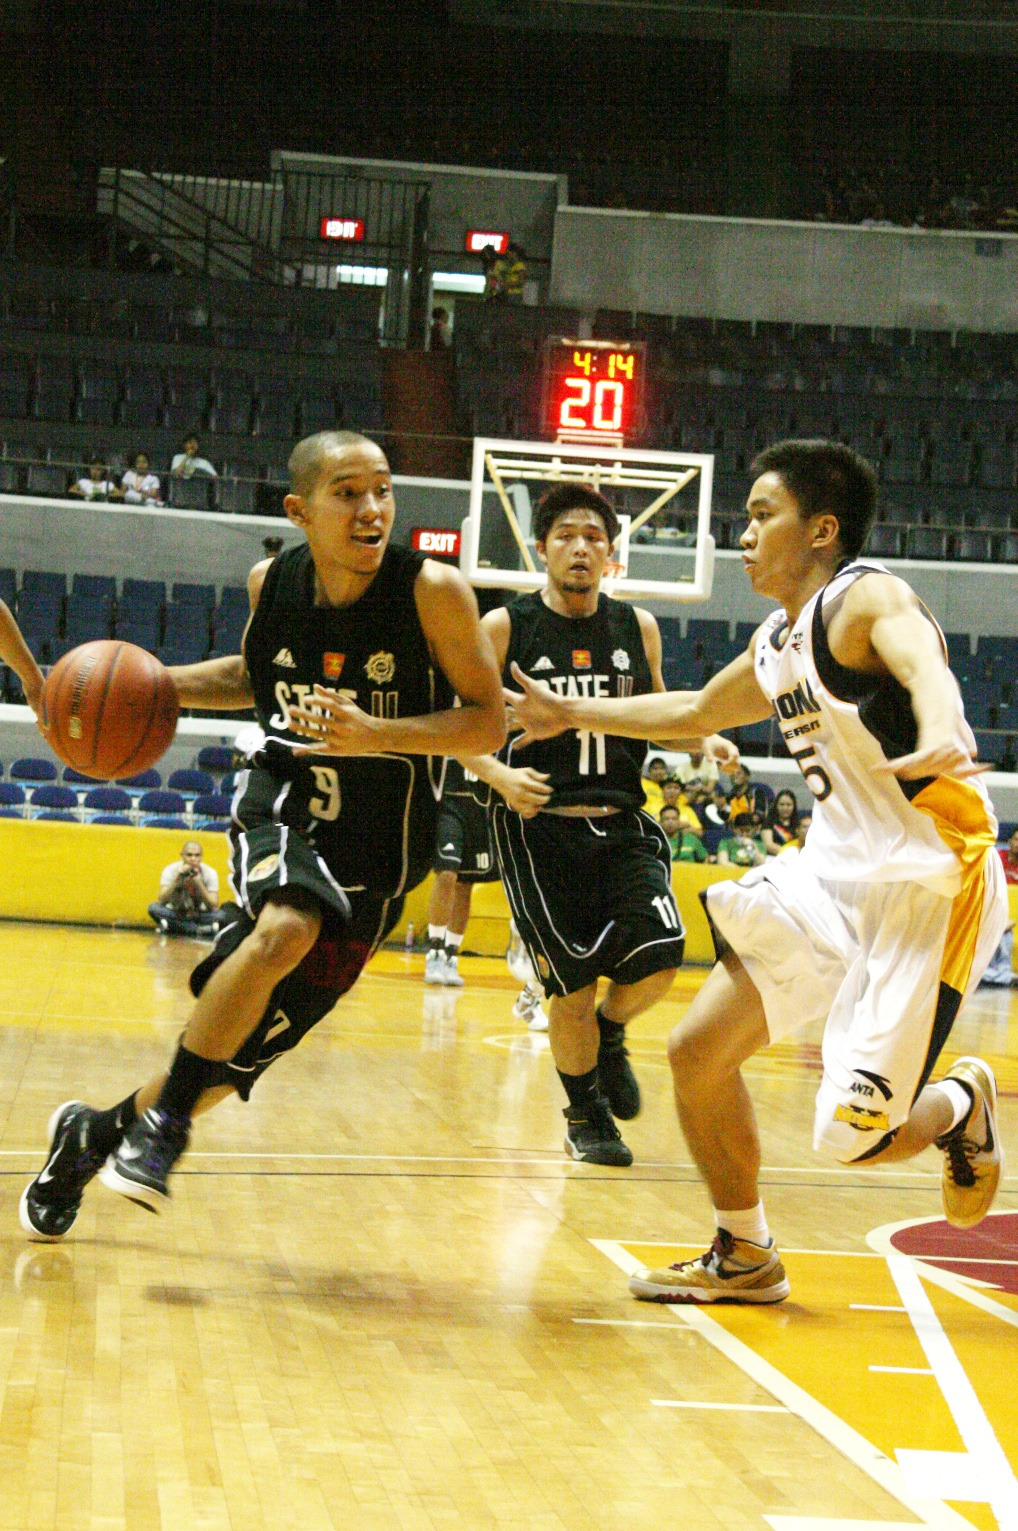 Mikee Reyes on target: profiling the Maroons' power shooter